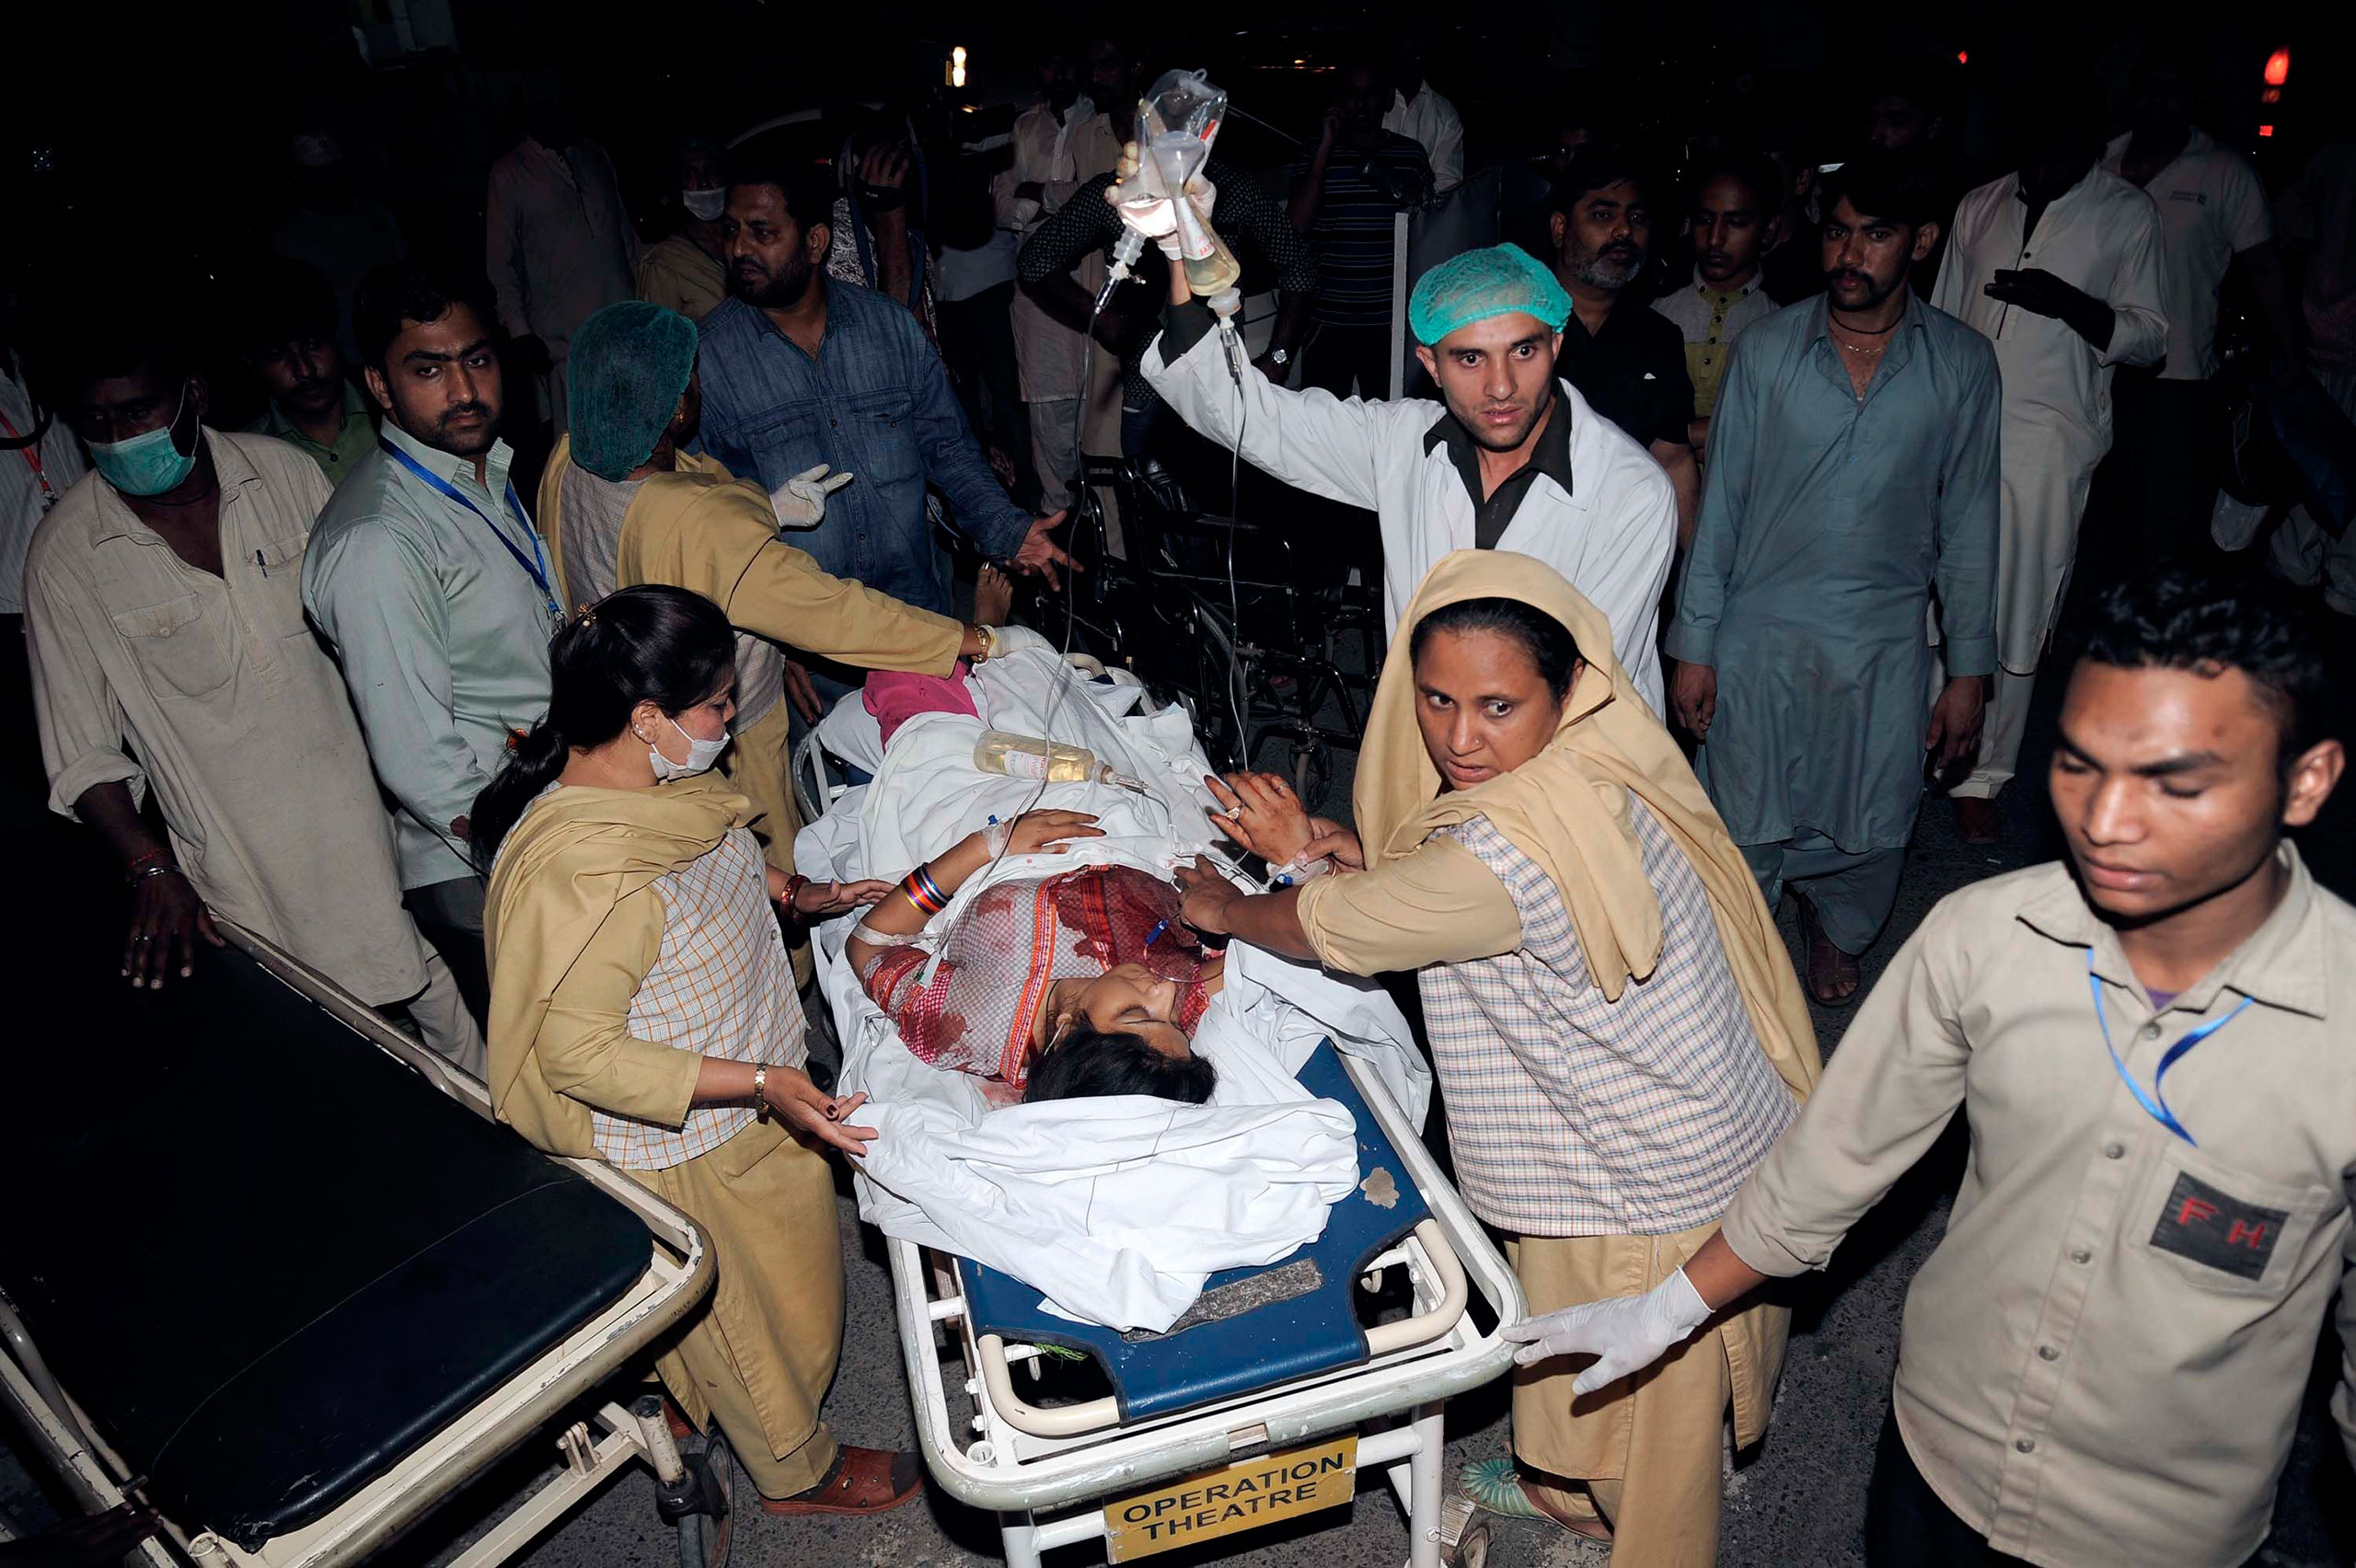 Relatives and emergency workers carry an injured woman to the hospital after at least 70 people were killed in an Easter Sunday bombing at a park in Lahore, Pakistan, on March 27, 2016